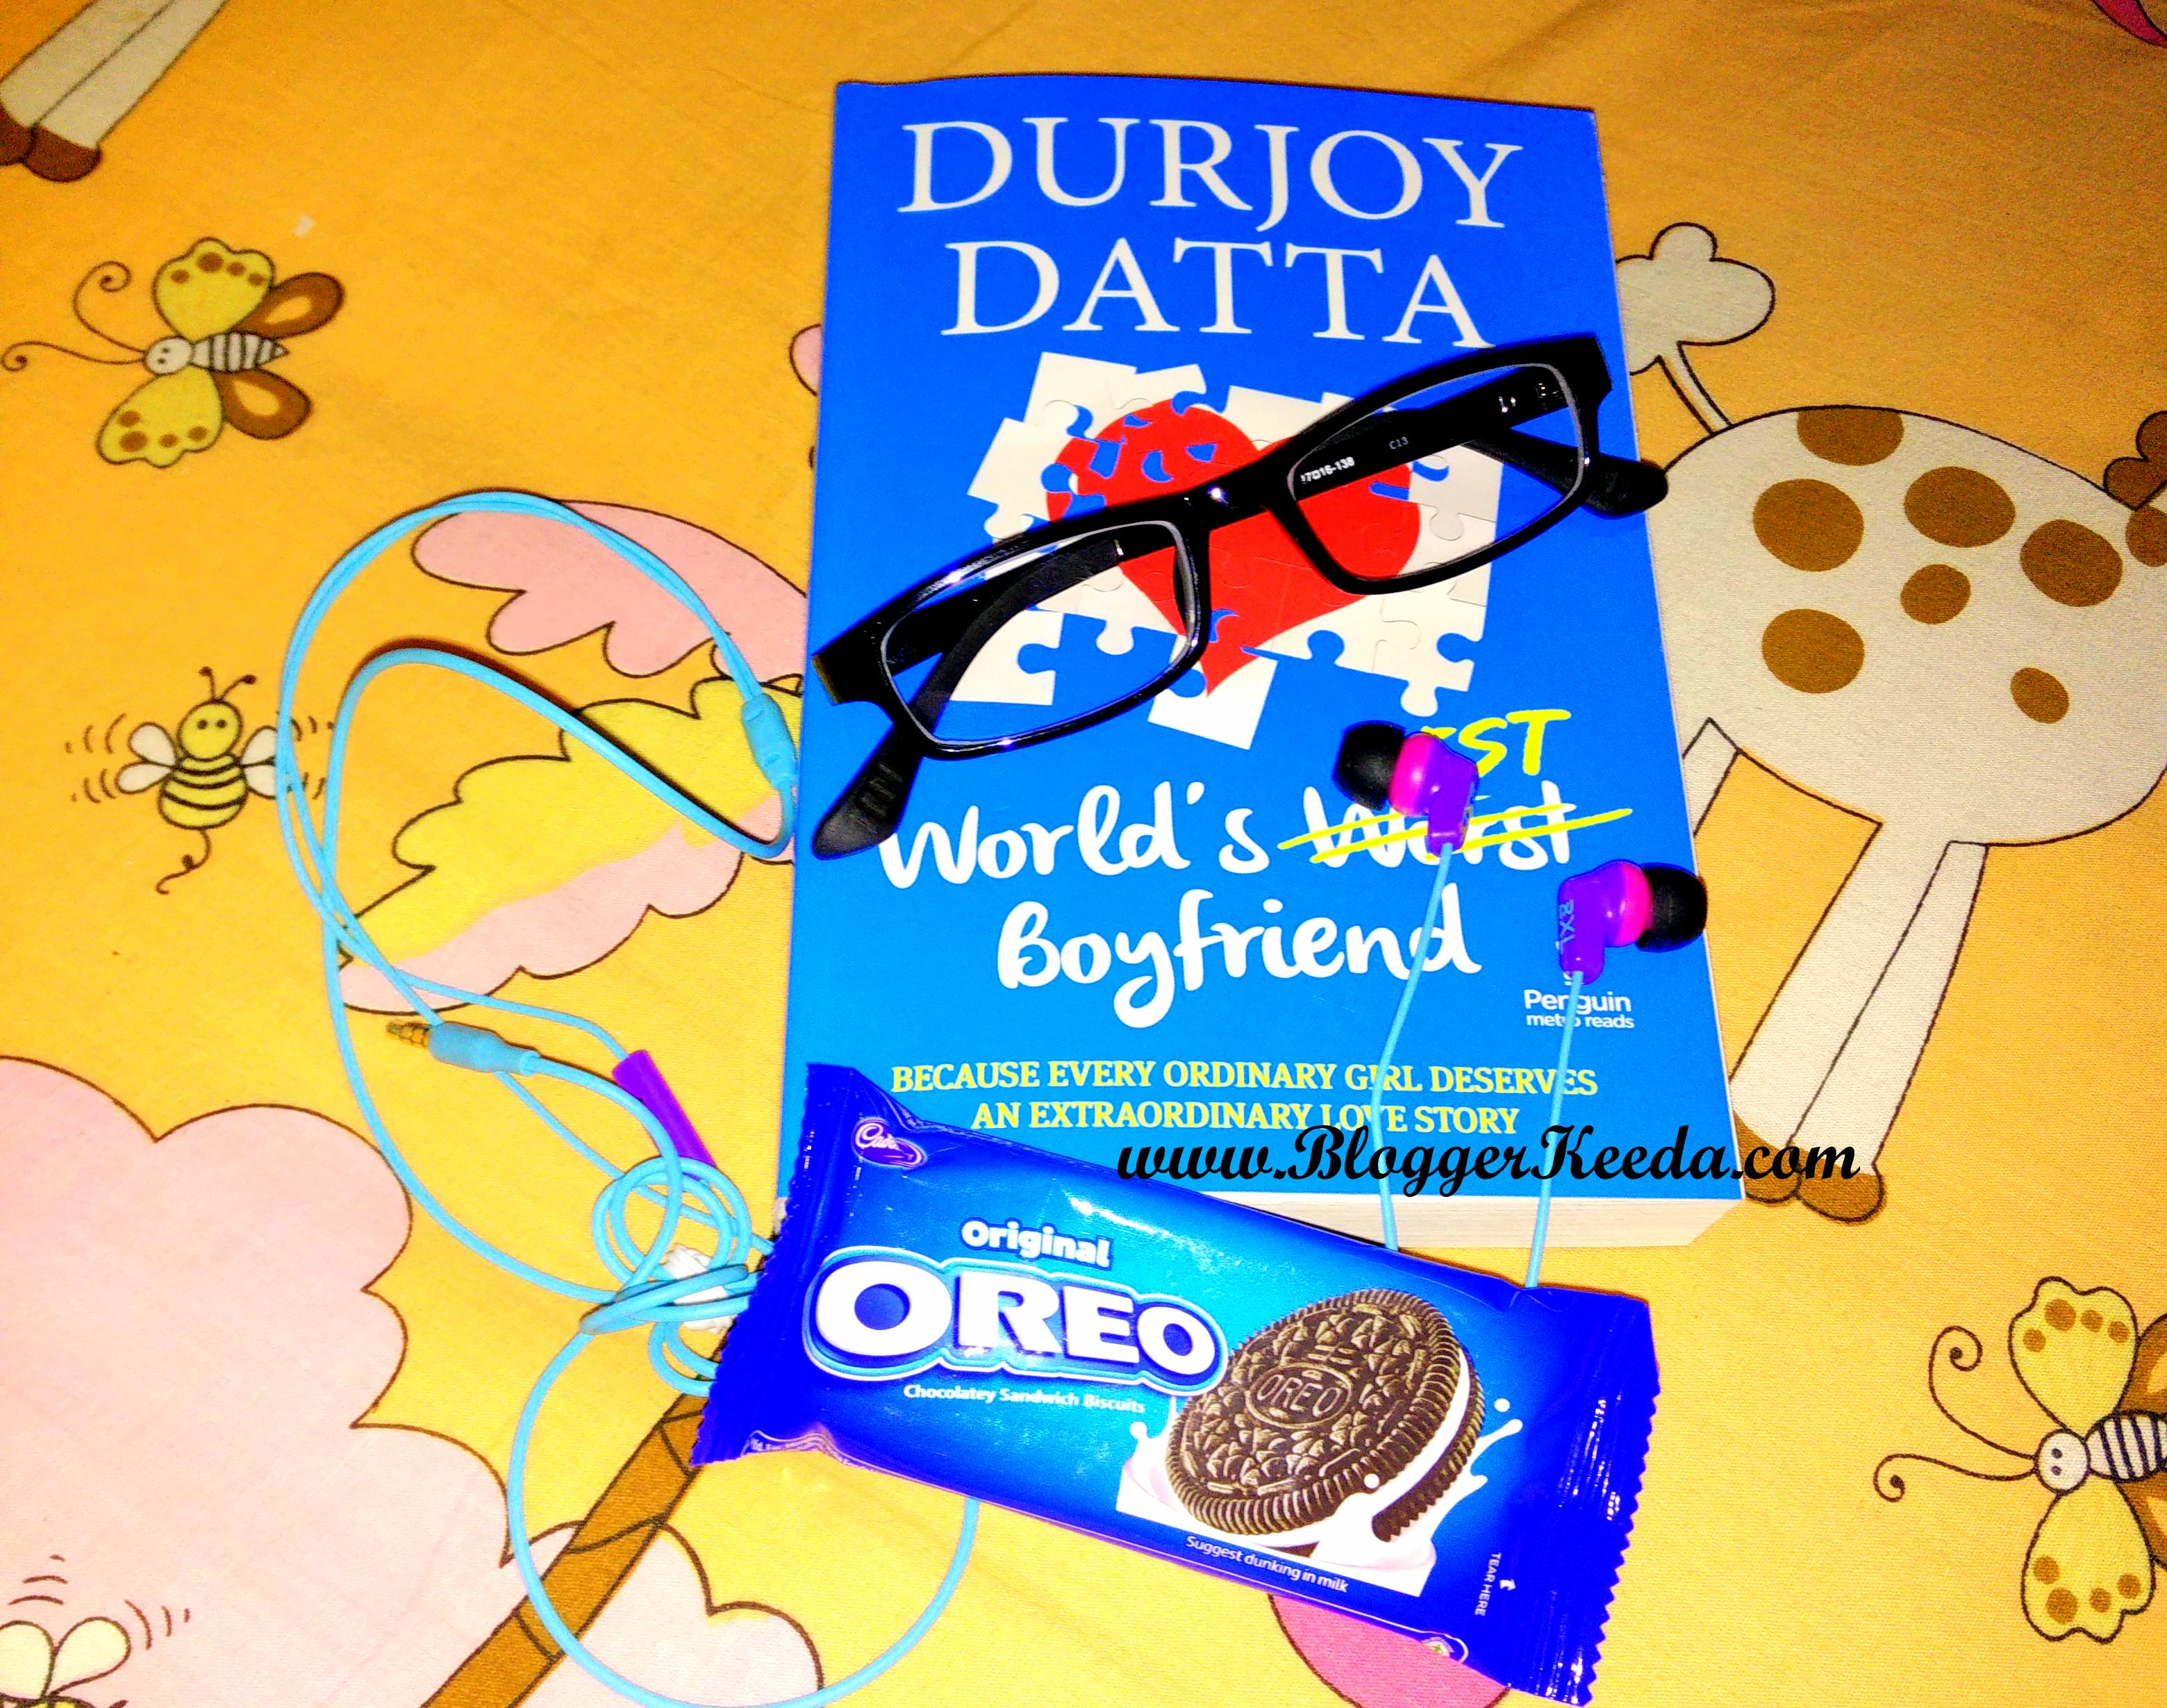 Worlds Best Boyfriend by Durjoy Datta 01